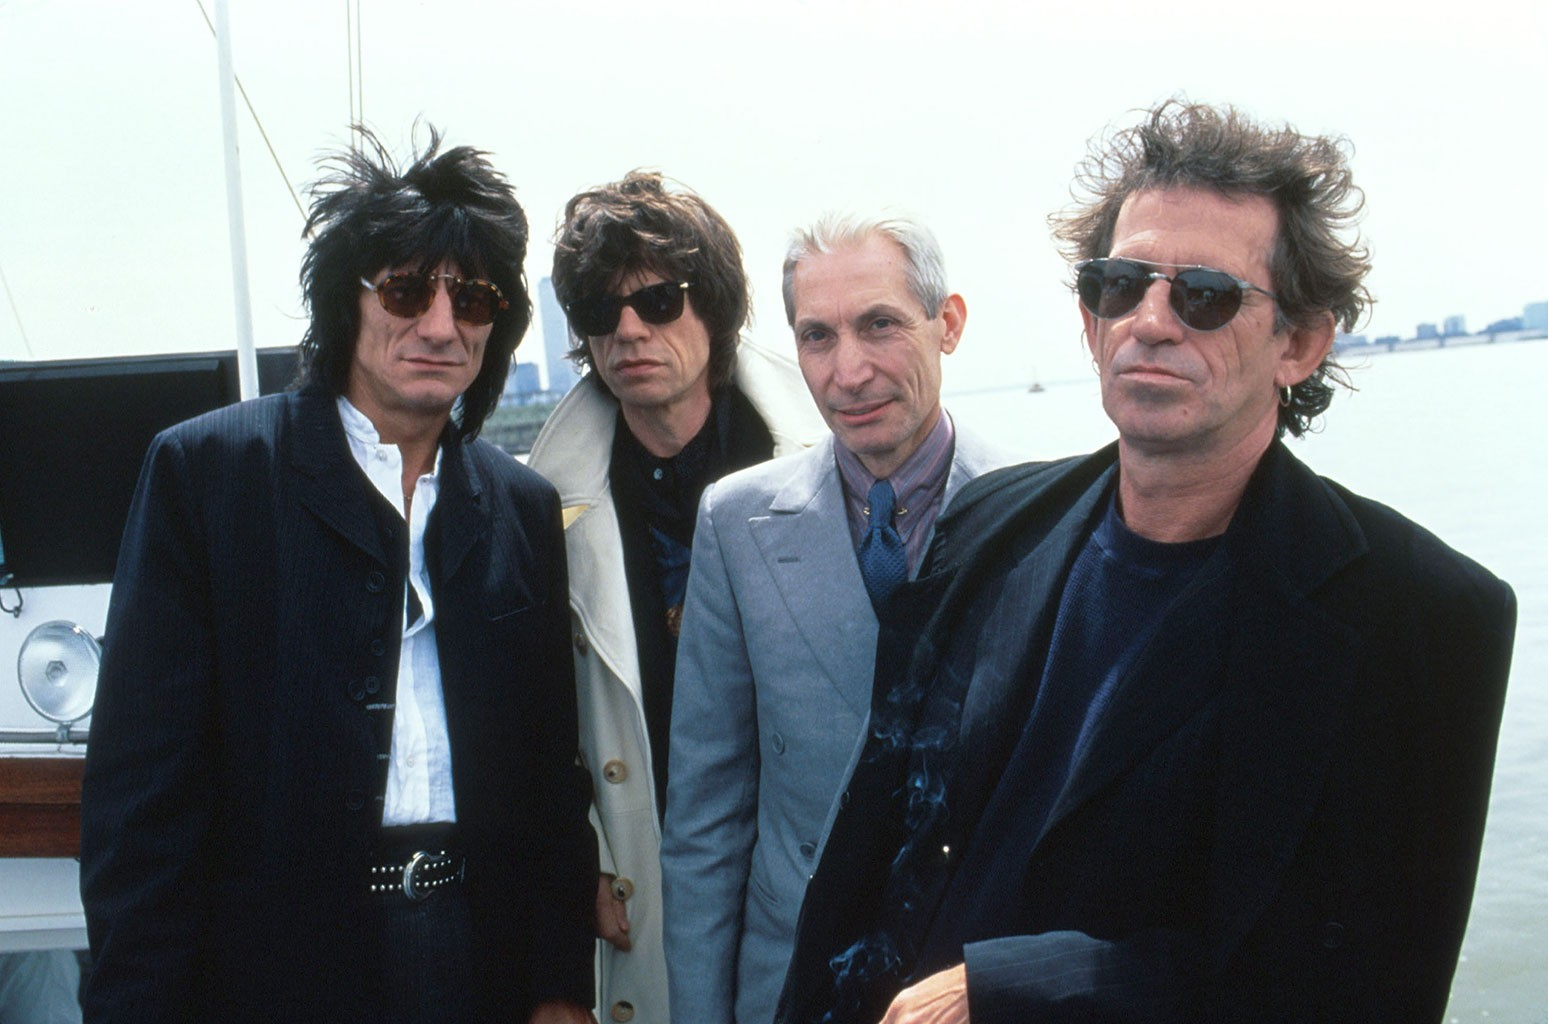 Mick Jagger, Keith Richards Pay Tribute to Charlie Watts